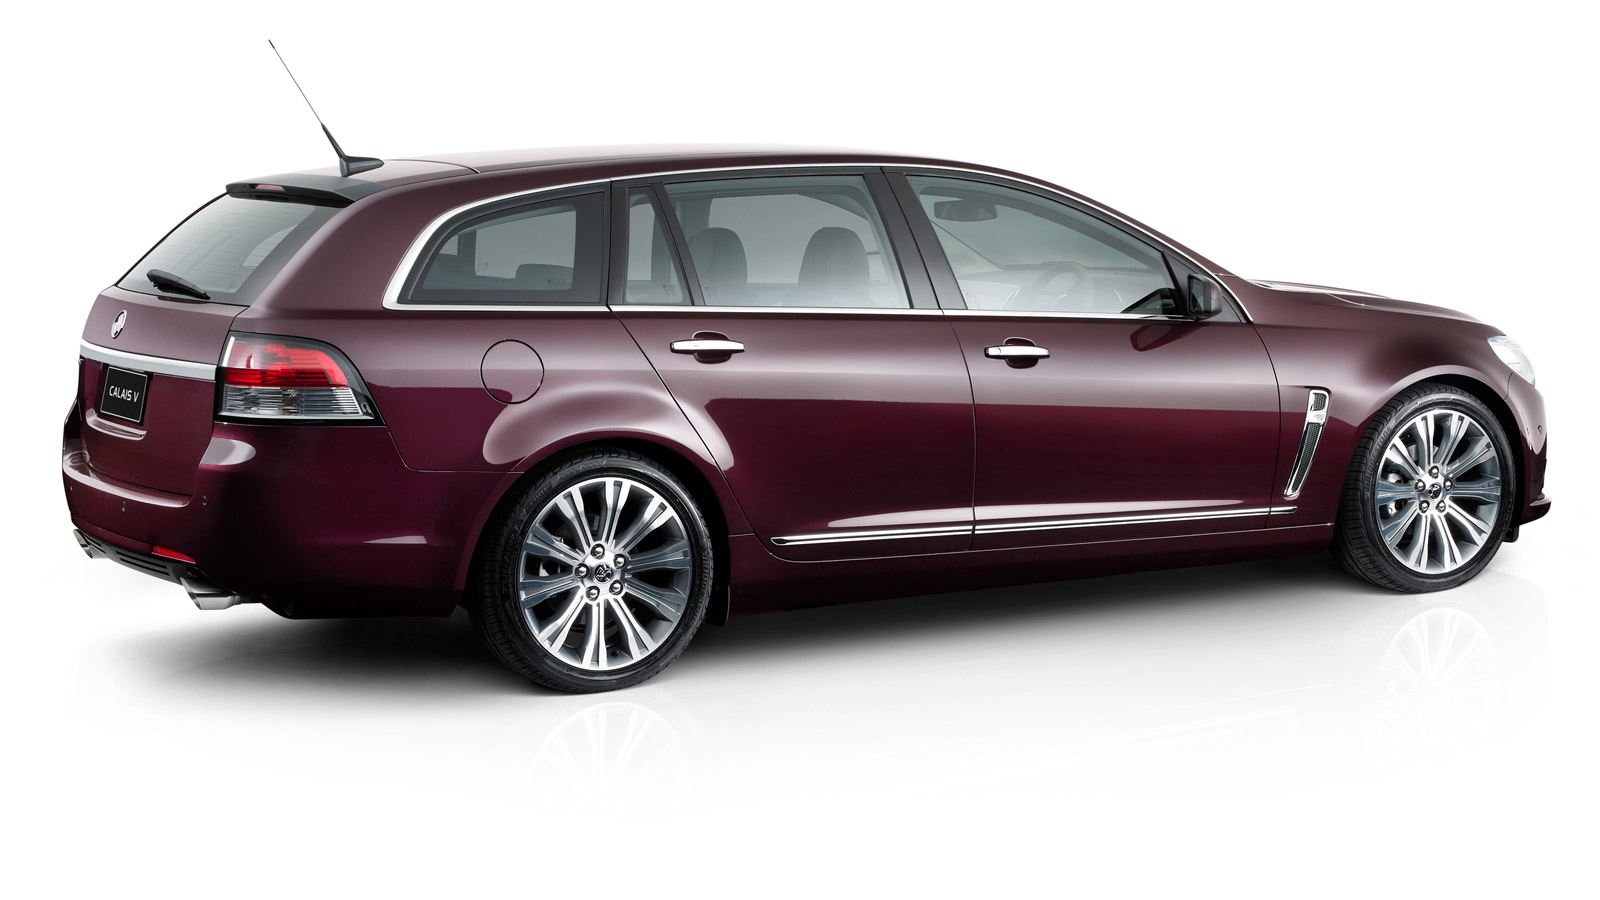 Vf Holden Commodore Ute And Sportwagon Revealed Us Sales